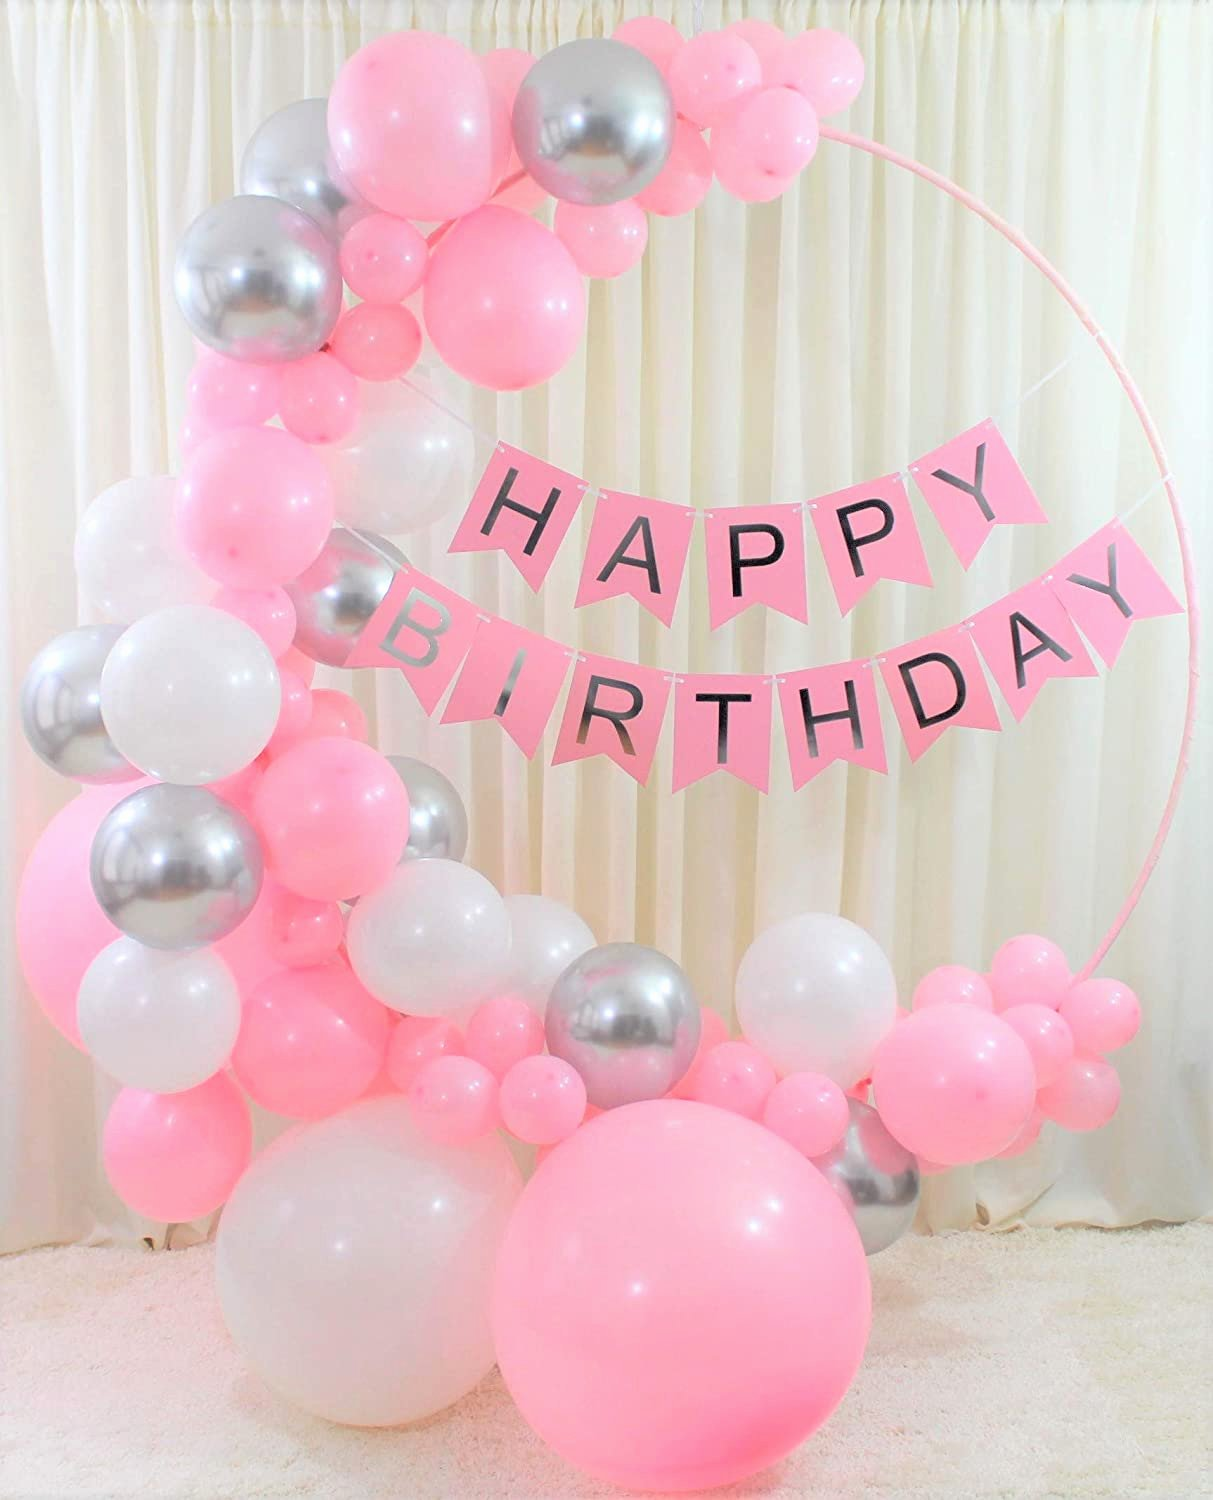 Birthday Decoration Ideas for Baby Girl at Home Unique Qutechat Happy Birthday Decorations for Women and Girls 88 Pink White and Silver Balloons Lovely Banner with White Ribbon Diy tool Kit for